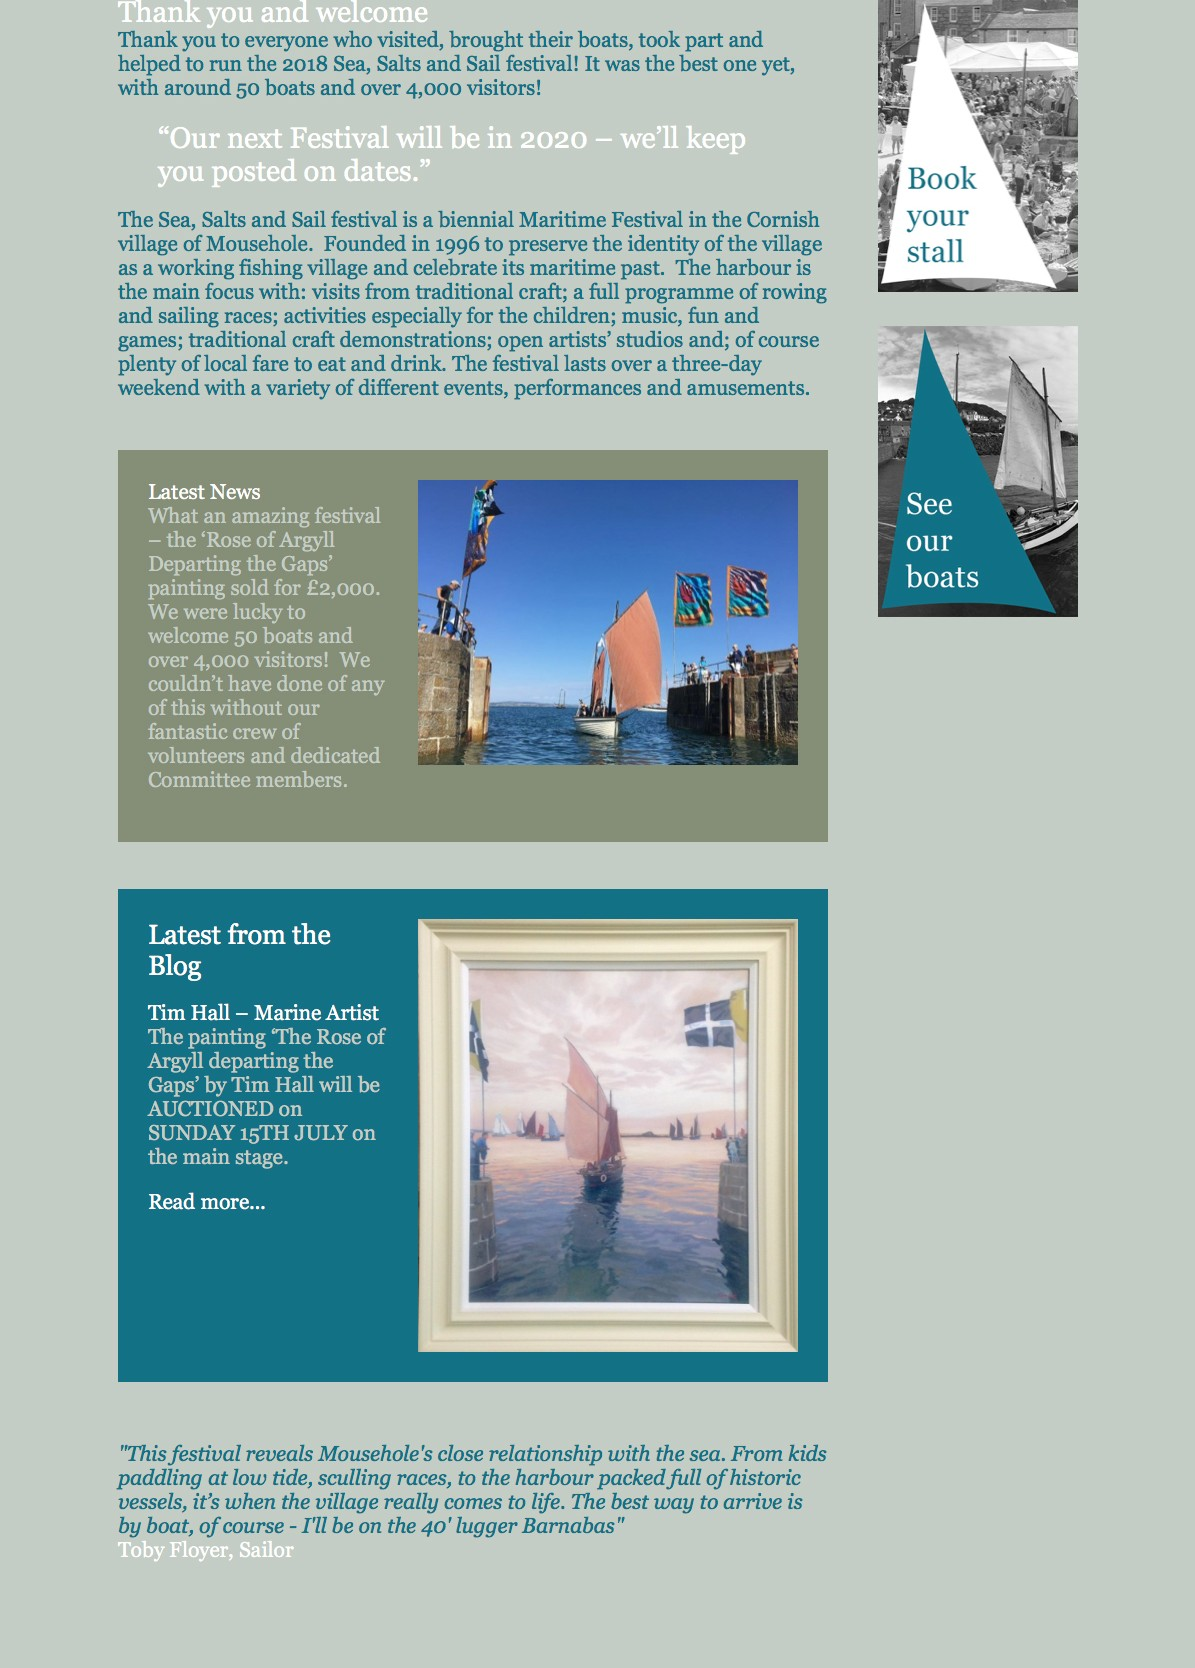 The Home page Pickle Design created for Mousehole festival Sea Salts and Sails